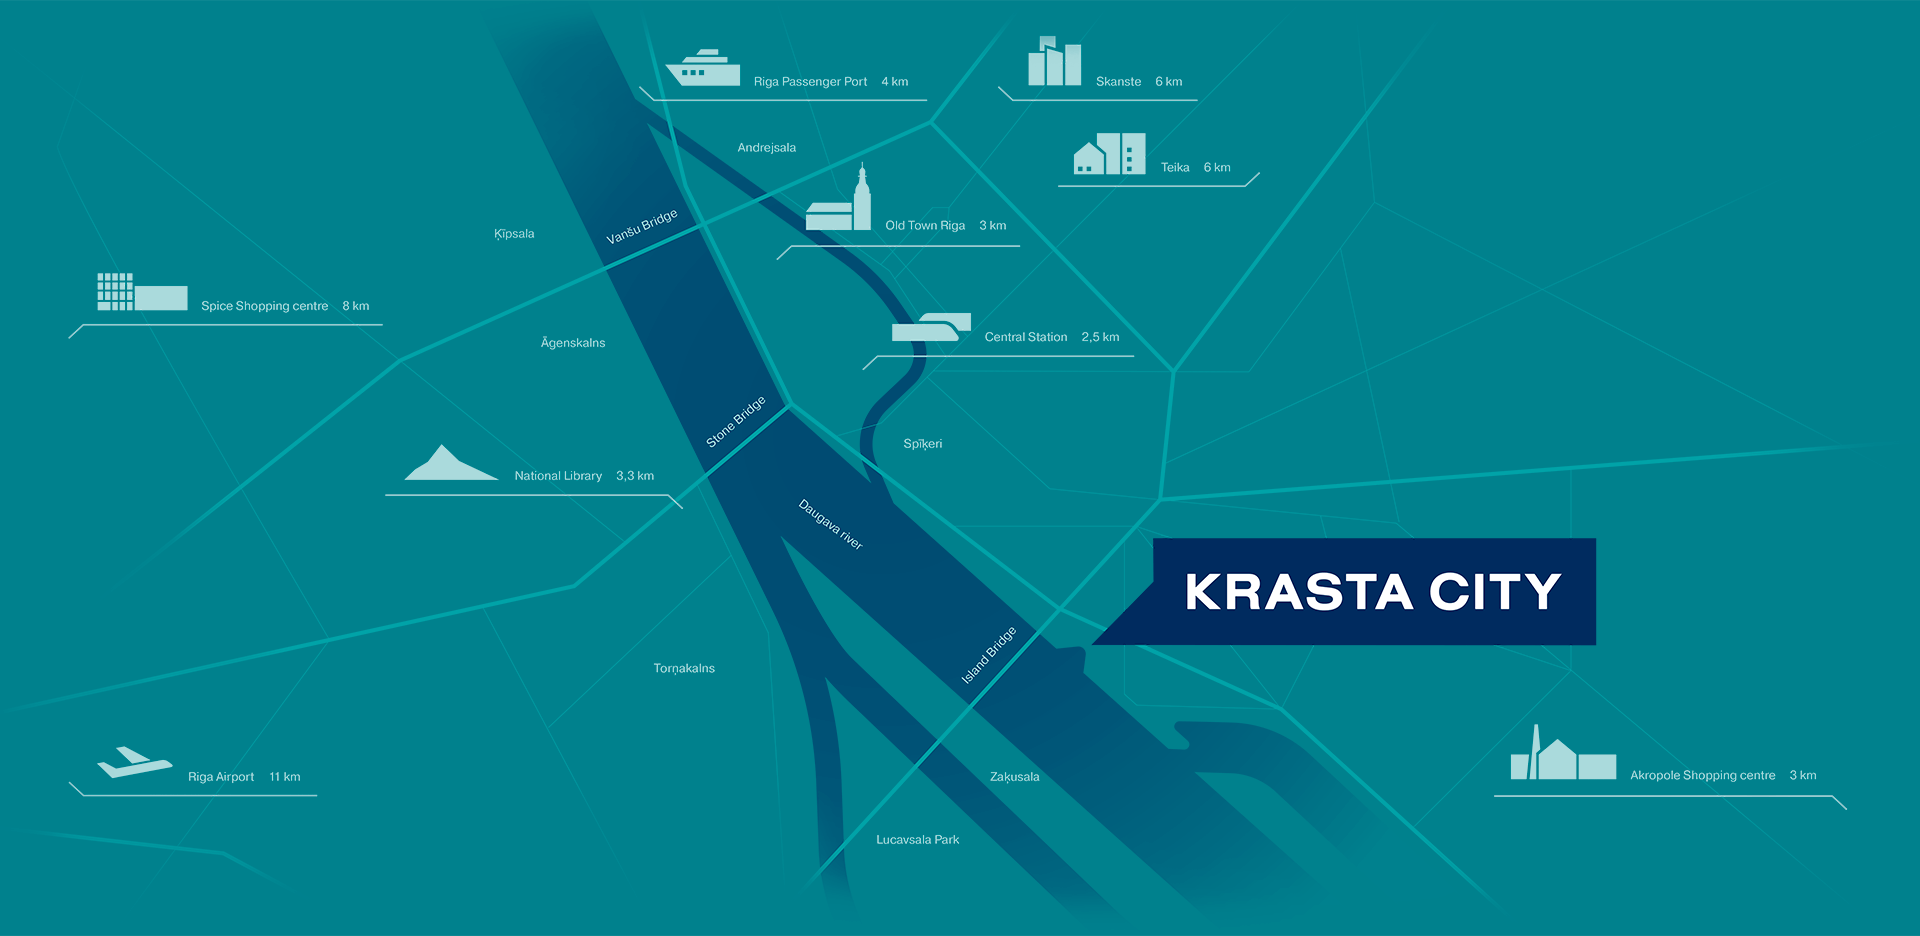 Krasta City Location